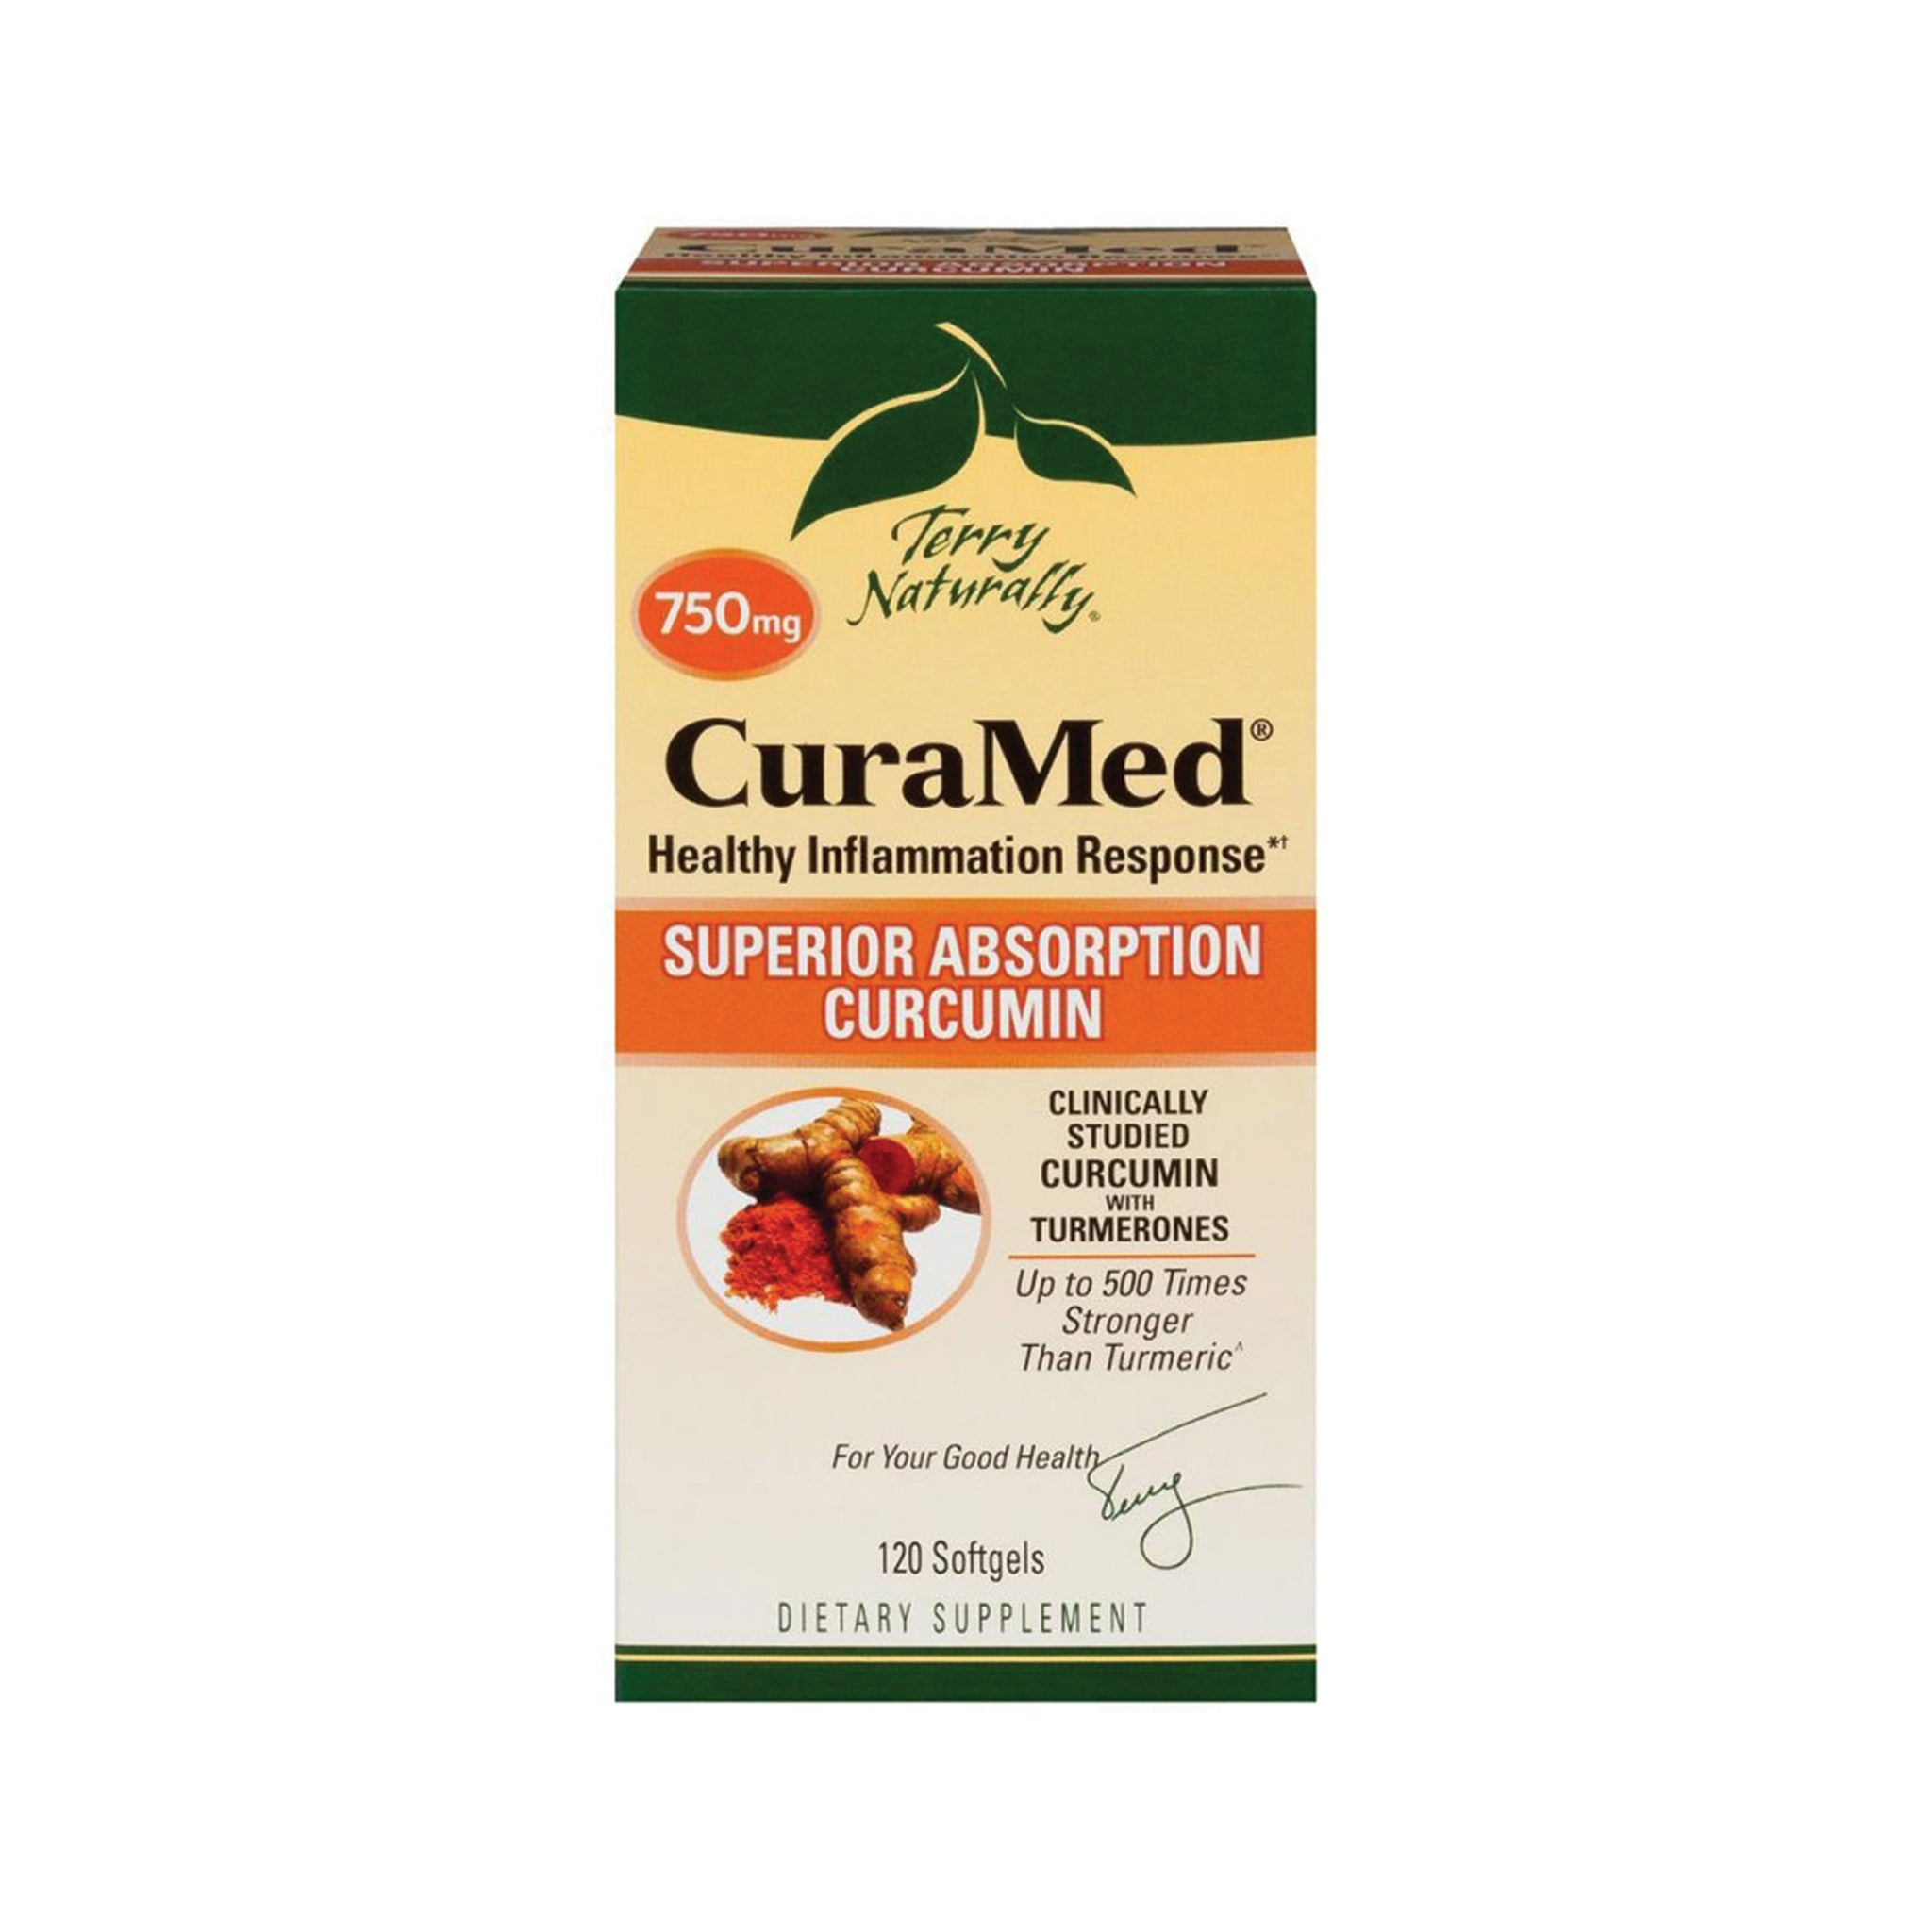 CuraMed Healthy Inflammation Response - Superior Absorption Curcumin - Terry Naturally